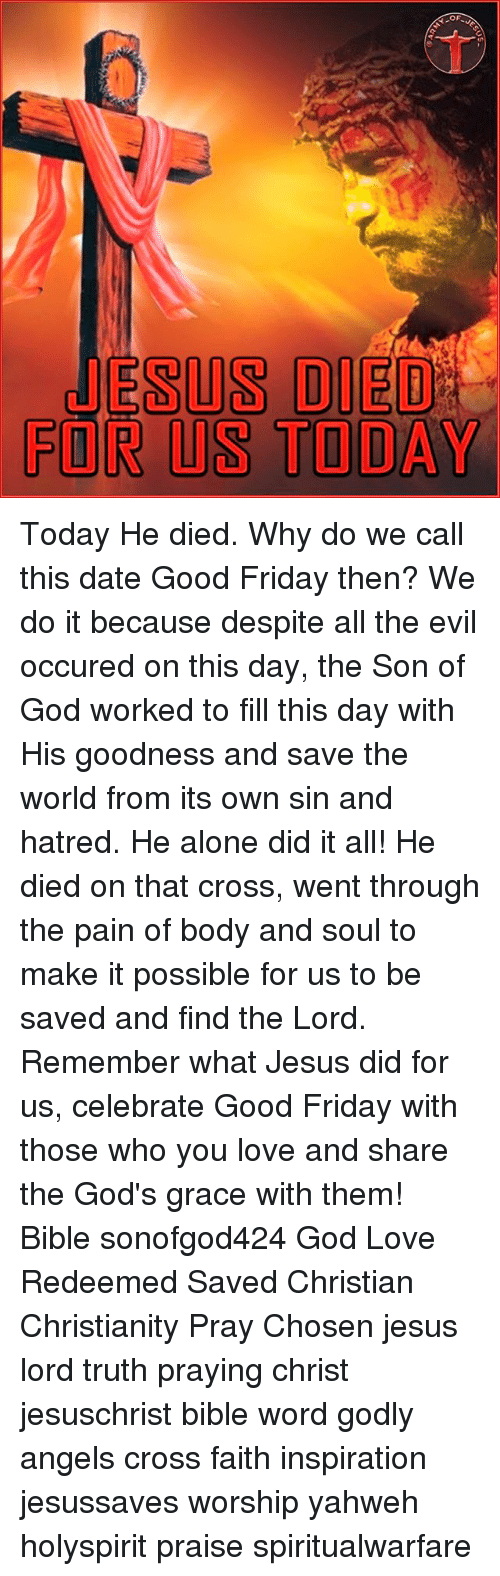 Being Alone, Friday, and God: OF  JESUS DIED  FOR US TODAY Today He died. Why do we call this date Good Friday then? We do it because despite all the evil occured on this day, the Son of God worked to fill this day with His goodness and save the world from its own sin and hatred. He alone did it all! He died on that cross, went through the pain of body and soul to make it possible for us to be saved and find the Lord. Remember what Jesus did for us, celebrate Good Friday with those who you love and share the God's grace with them! Bible sonofgod424 God Love Redeemed Saved Christian Christianity Pray Chosen jesus lord truth praying christ jesuschrist bible word godly angels cross faith inspiration jesussaves worship yahweh holyspirit praise spiritualwarfare